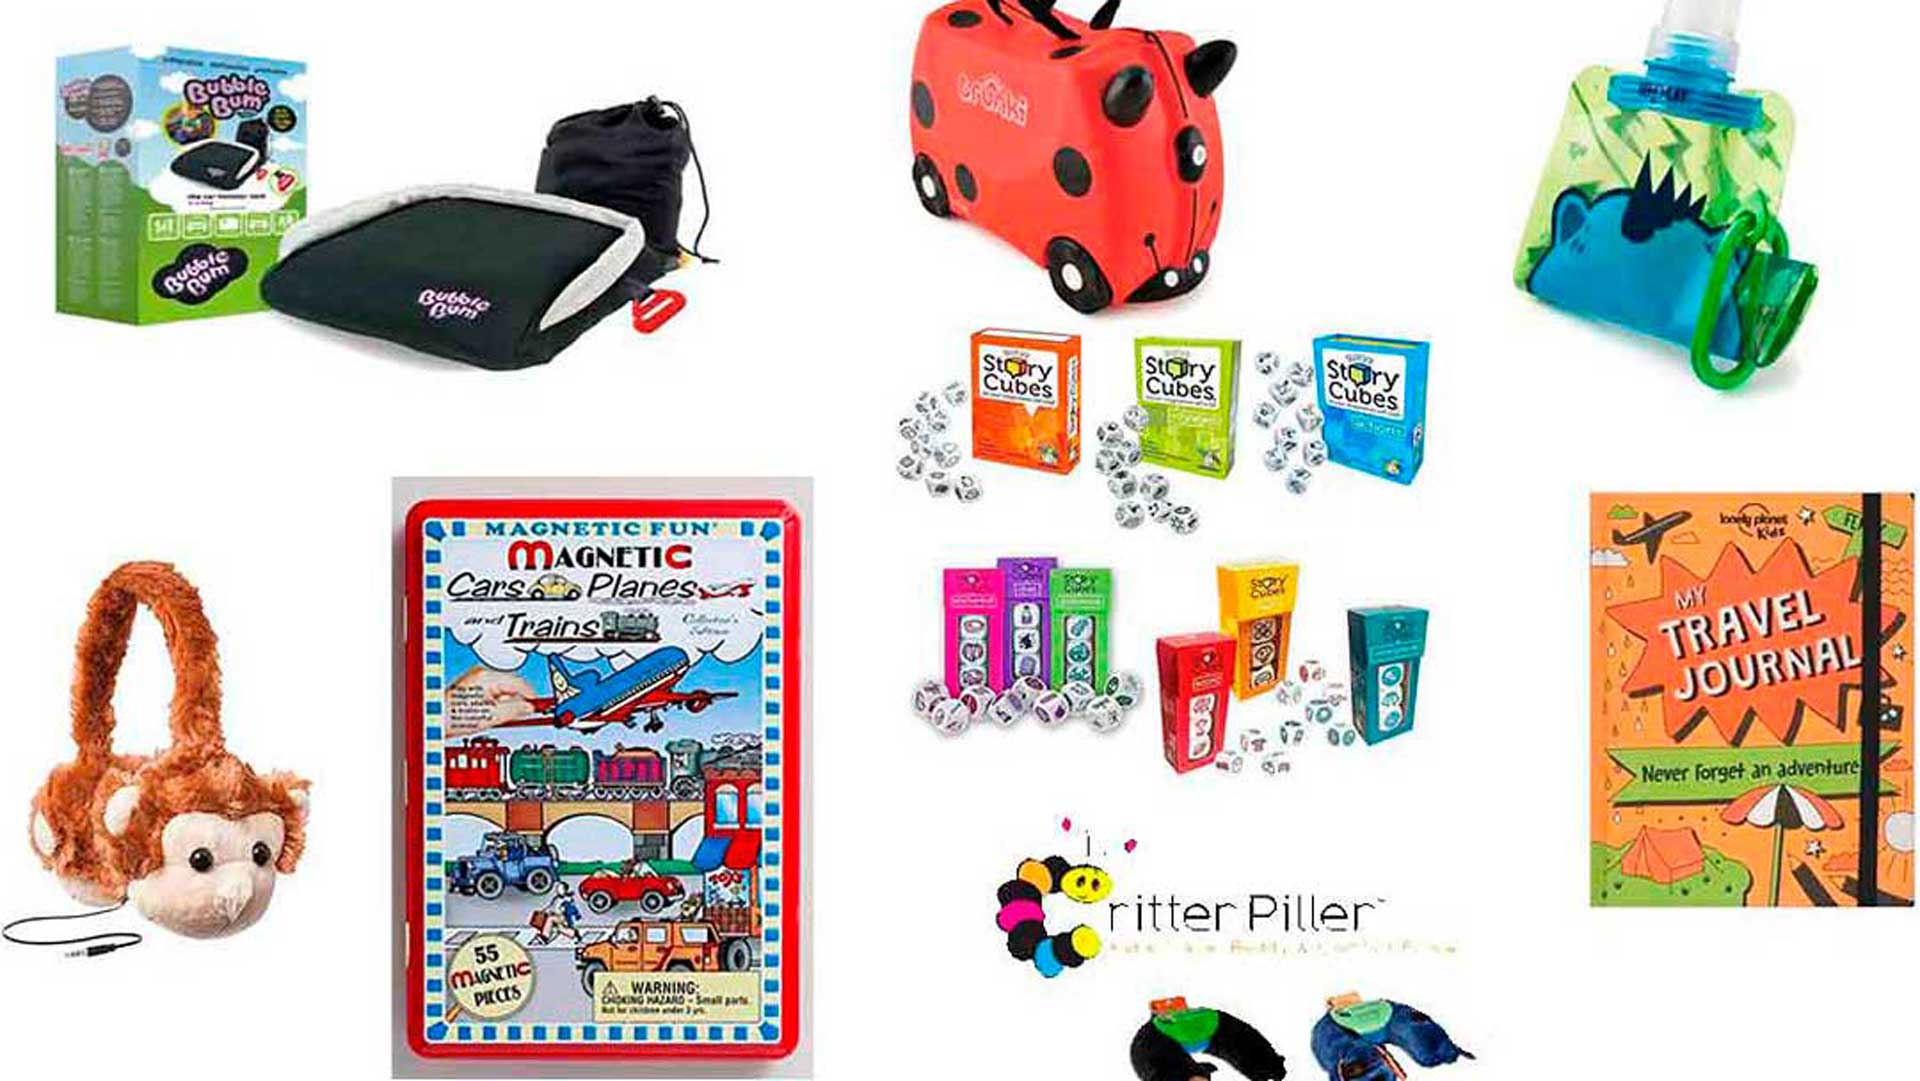 Gifts For Traveling Kids And Their Parents